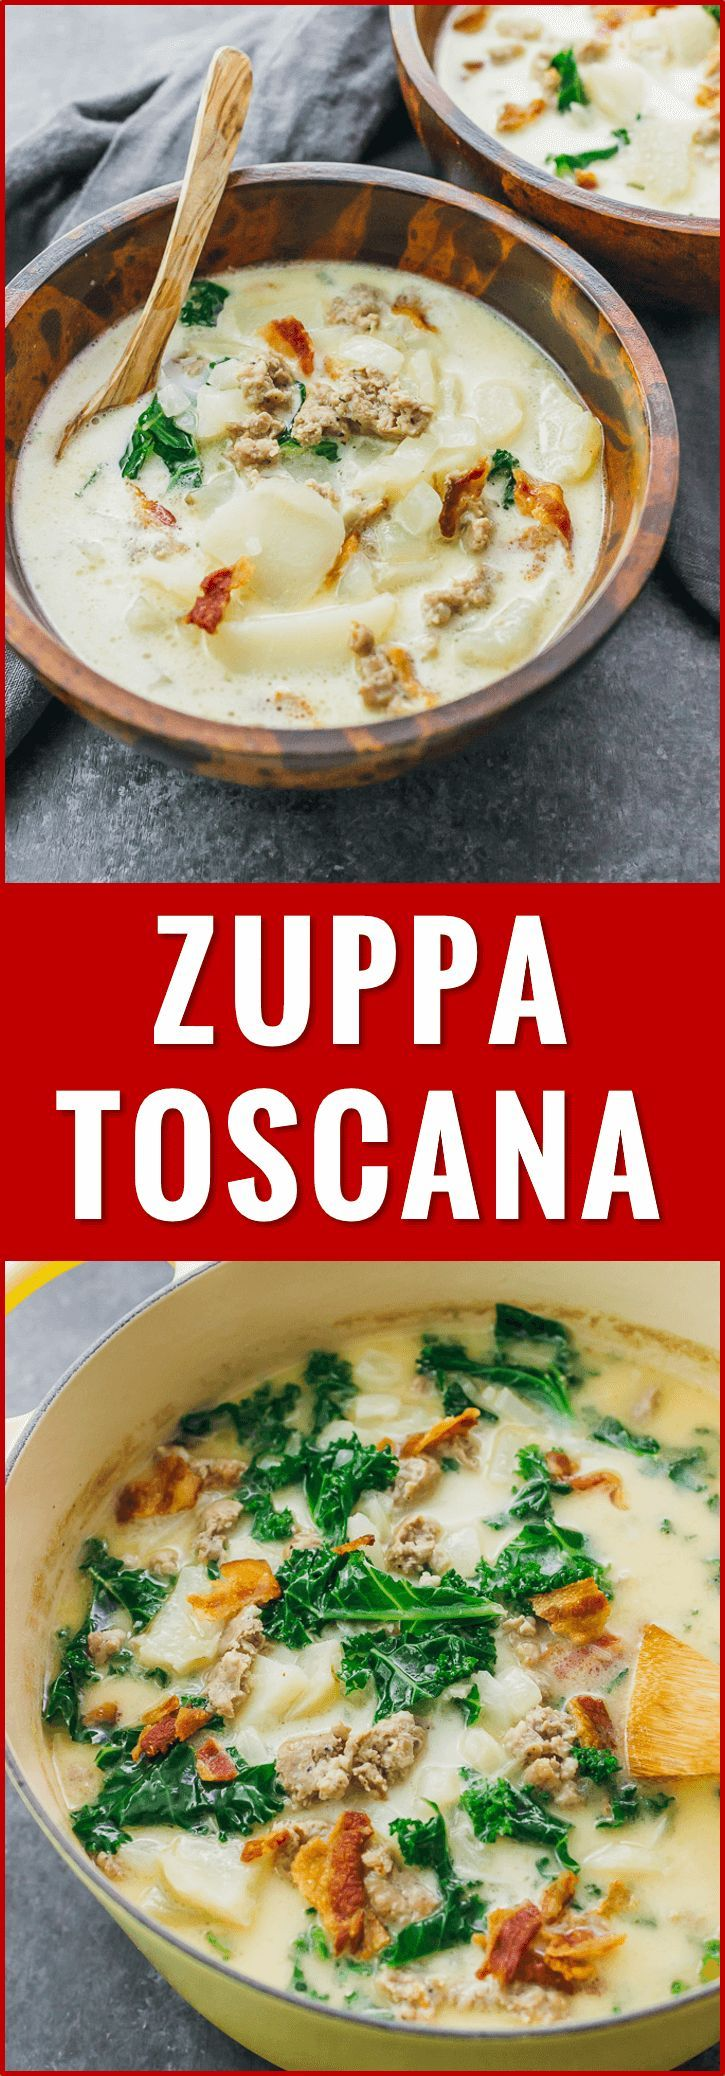 "Zuppa toscana or ""Tuscan soup"" is a comforting Italian"